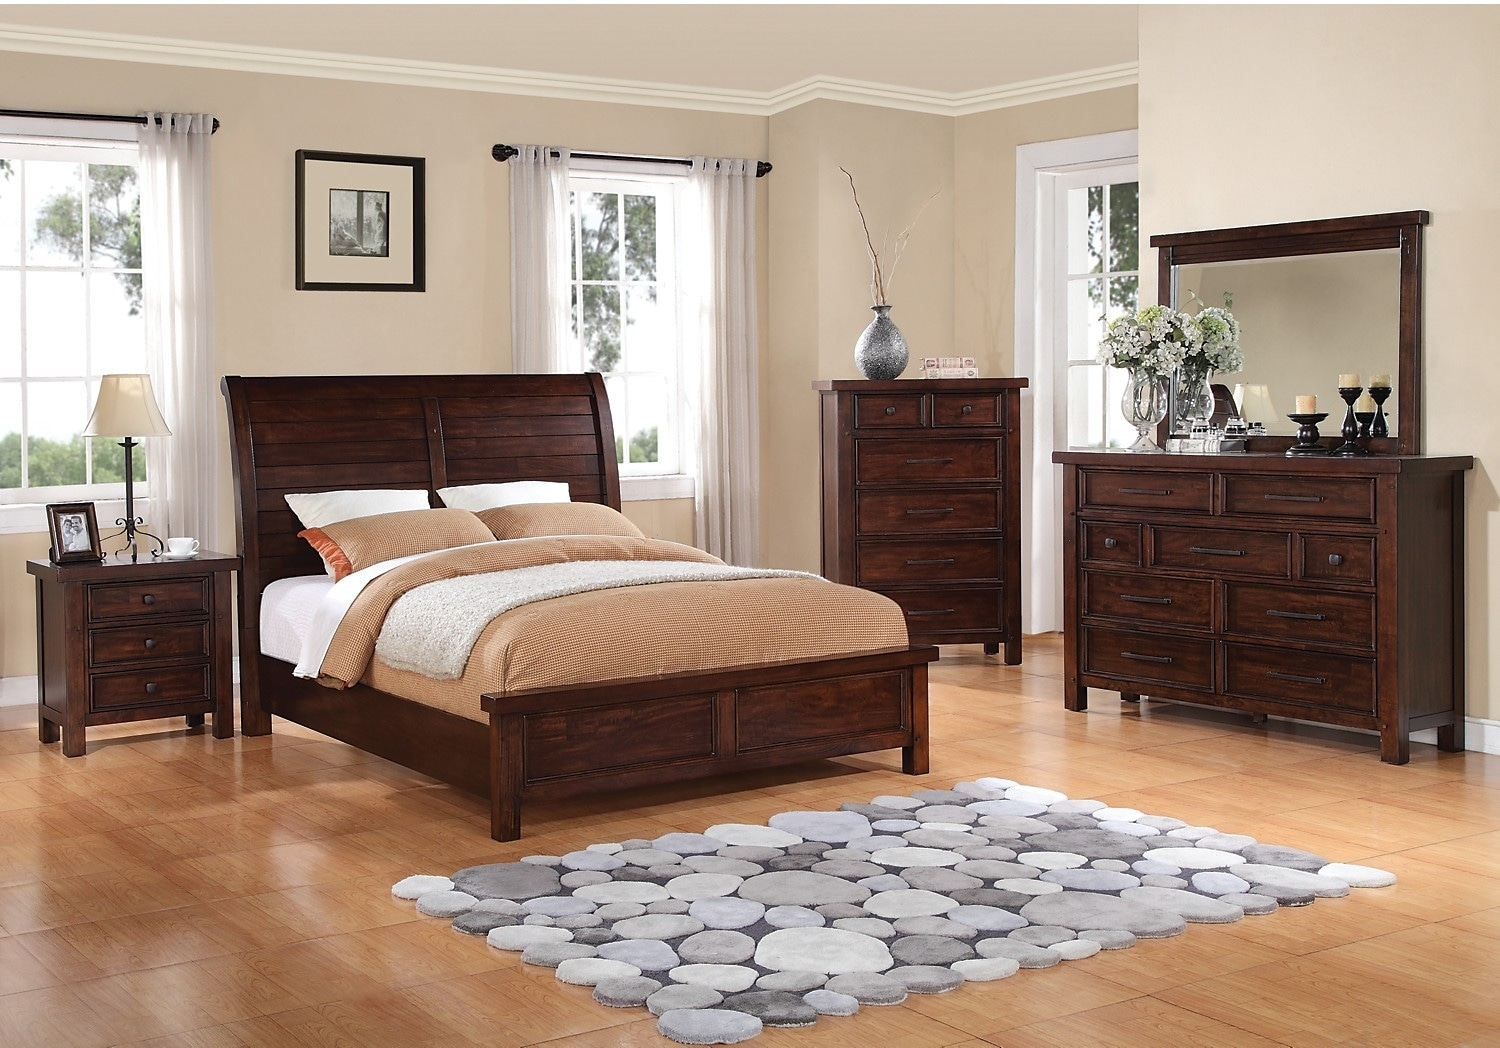 Bedroom Furniture - Sonoma 8-Piece Queen Bedroom Package – Burnished Mango